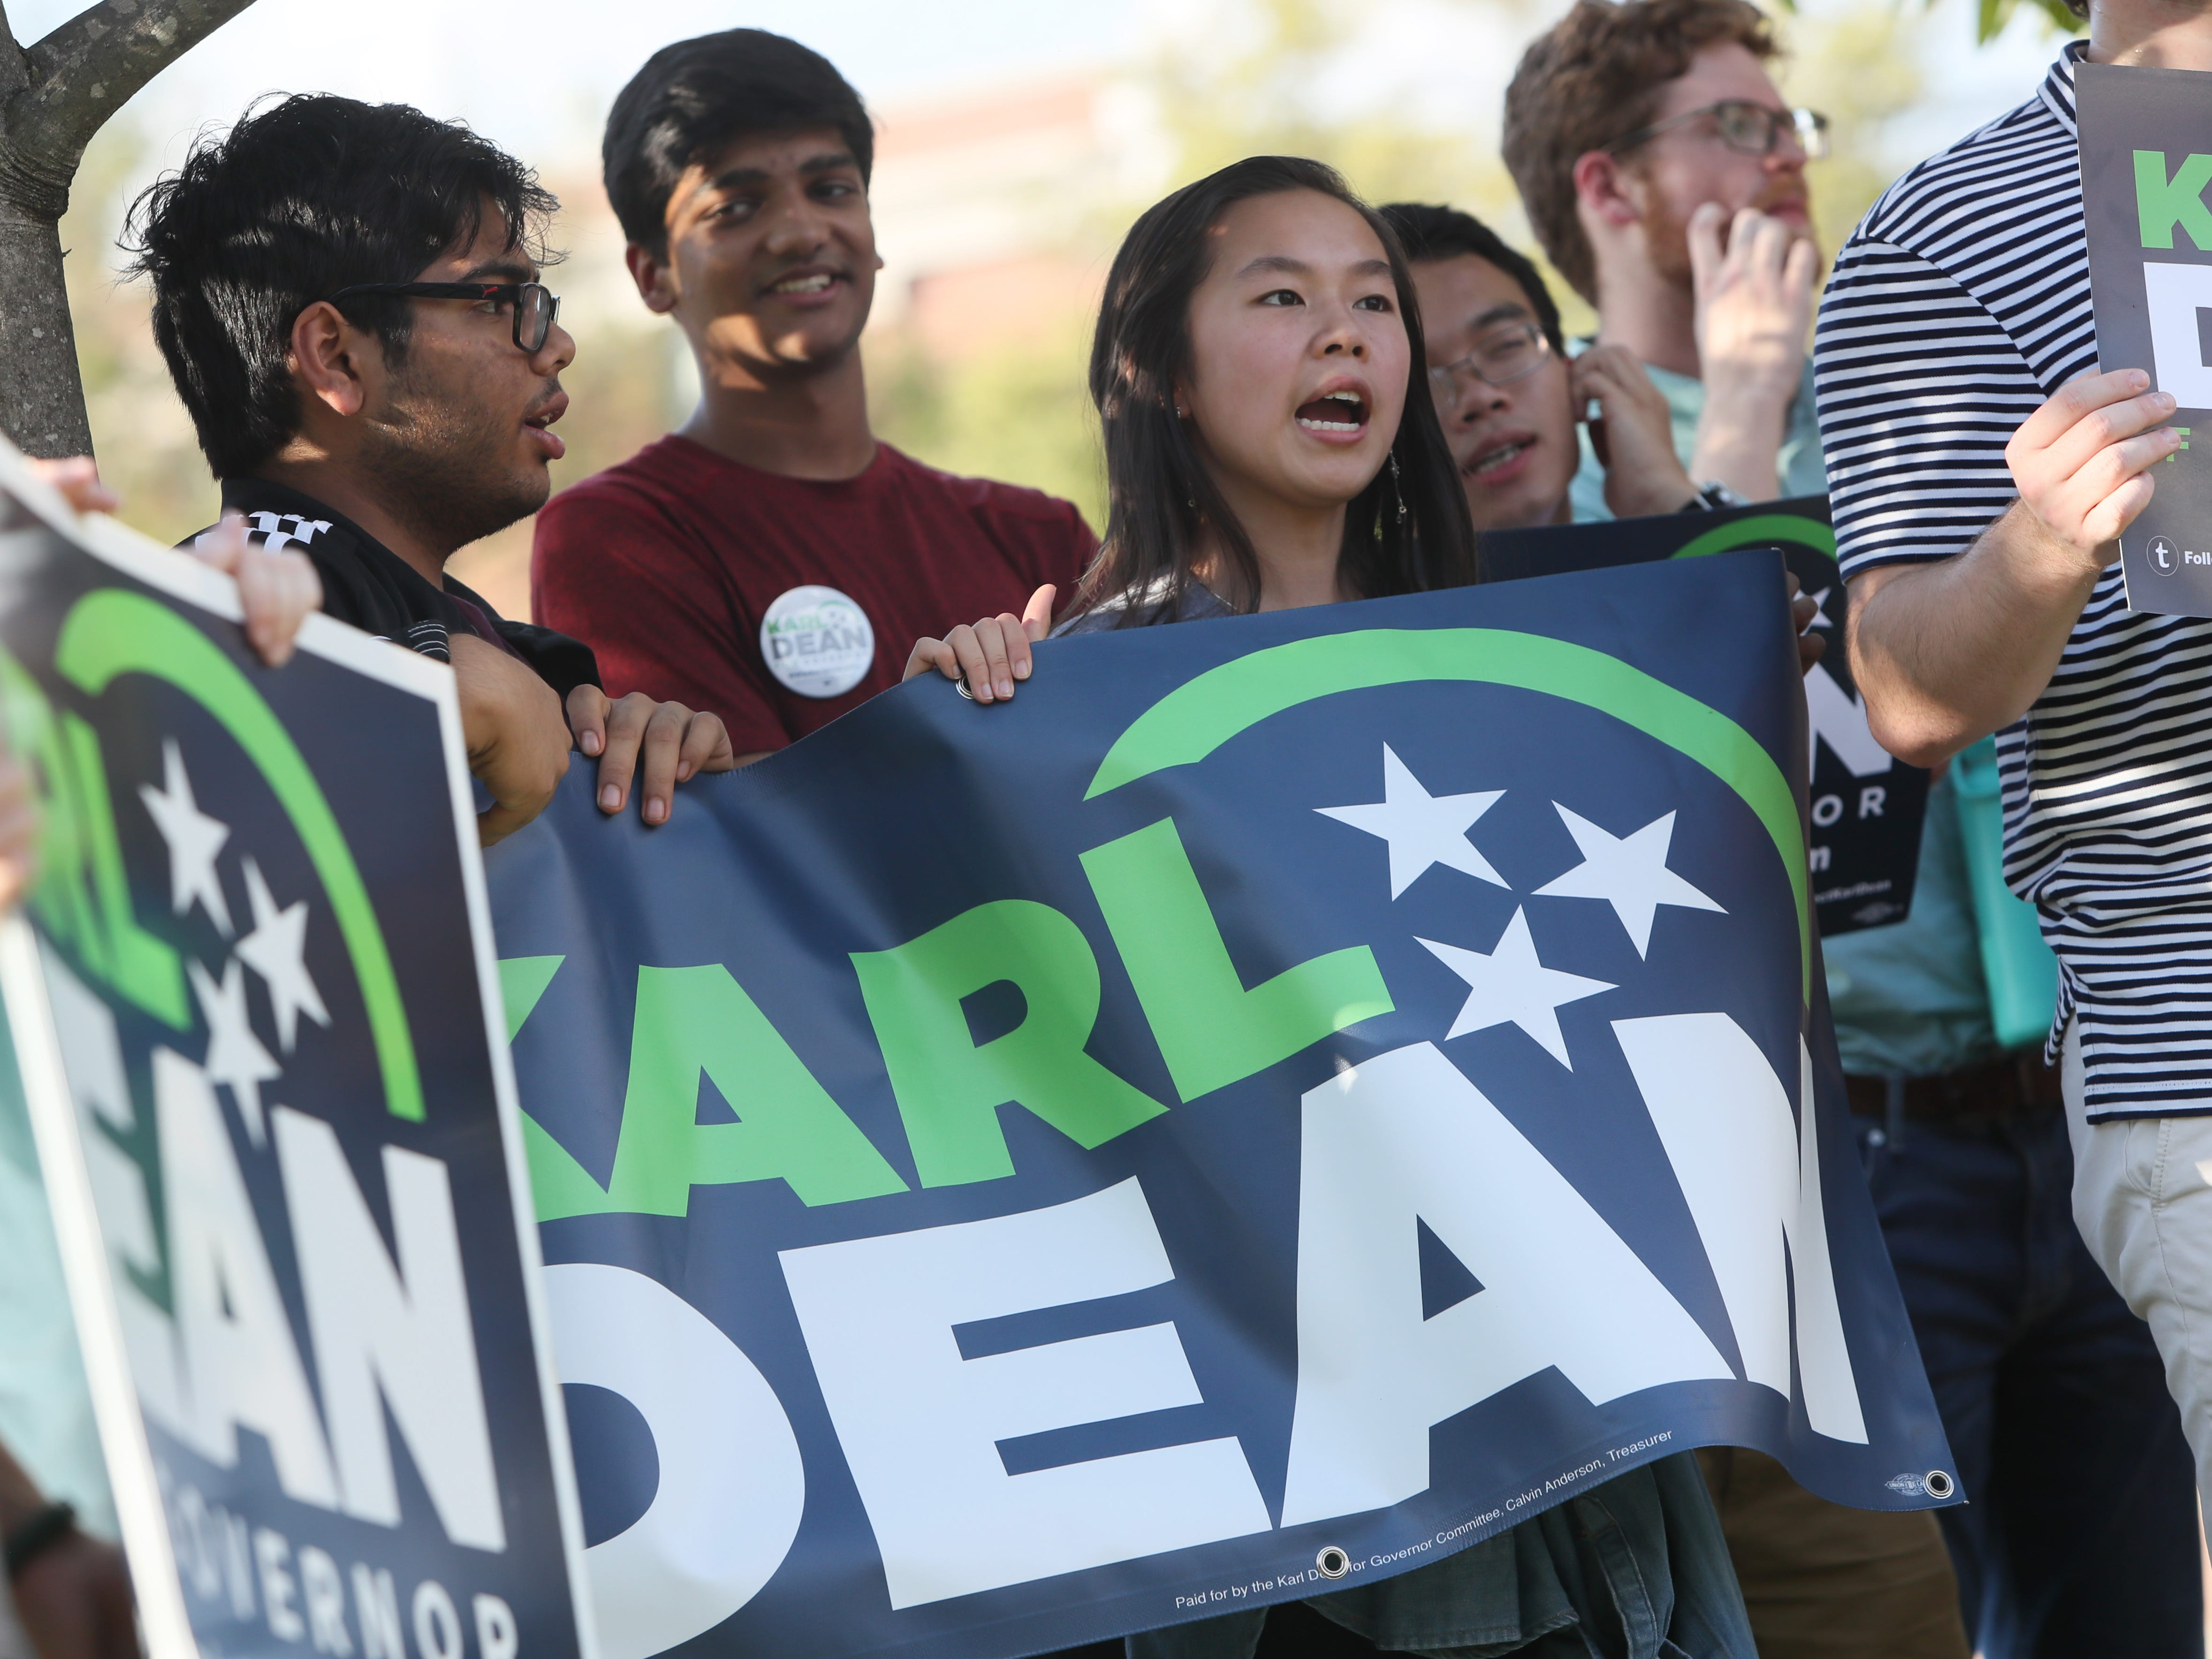 Karl Dean supporter Tina Nguyen cheers before the debate  between Dean and Bill Lee, at the University of Memphis' Michael D. Rose Theater Lecture Hall in Memphis, Tenn., on Tuesday, Oct. 2, 2018.